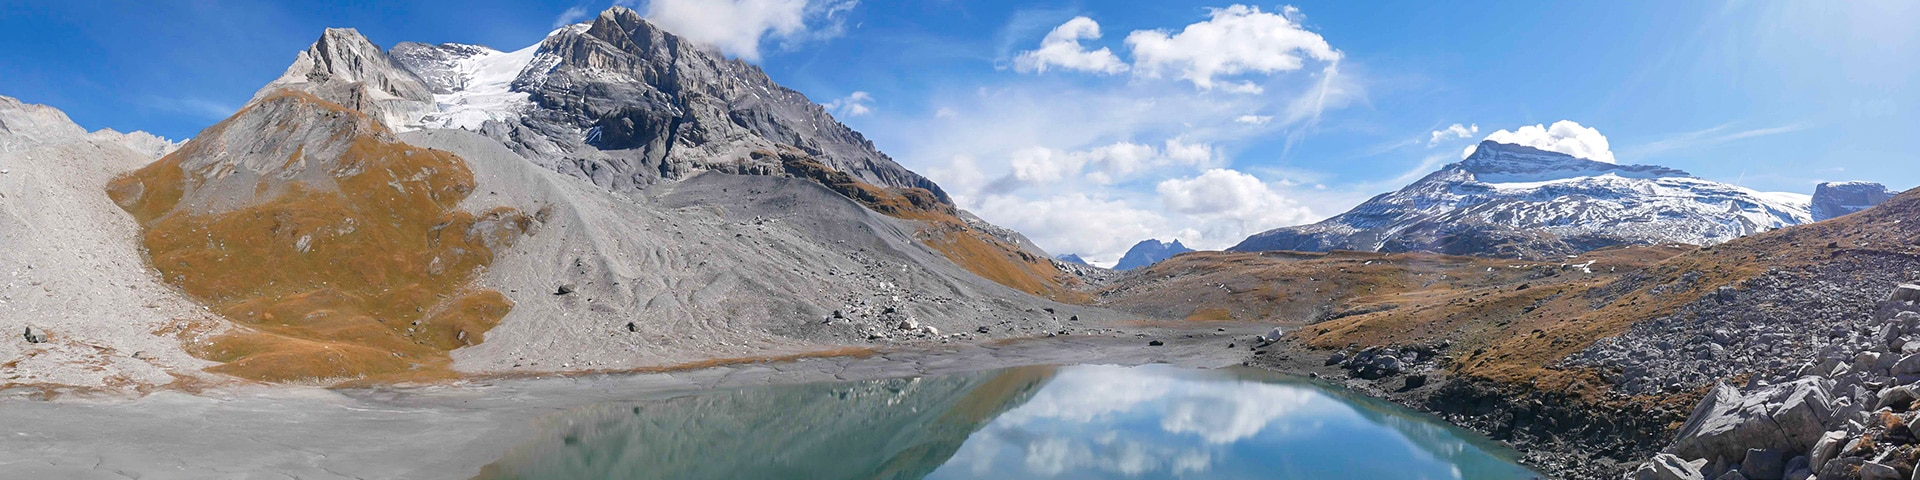 Panorama of the Lac des Vaches hike in Vanoise National Park, France